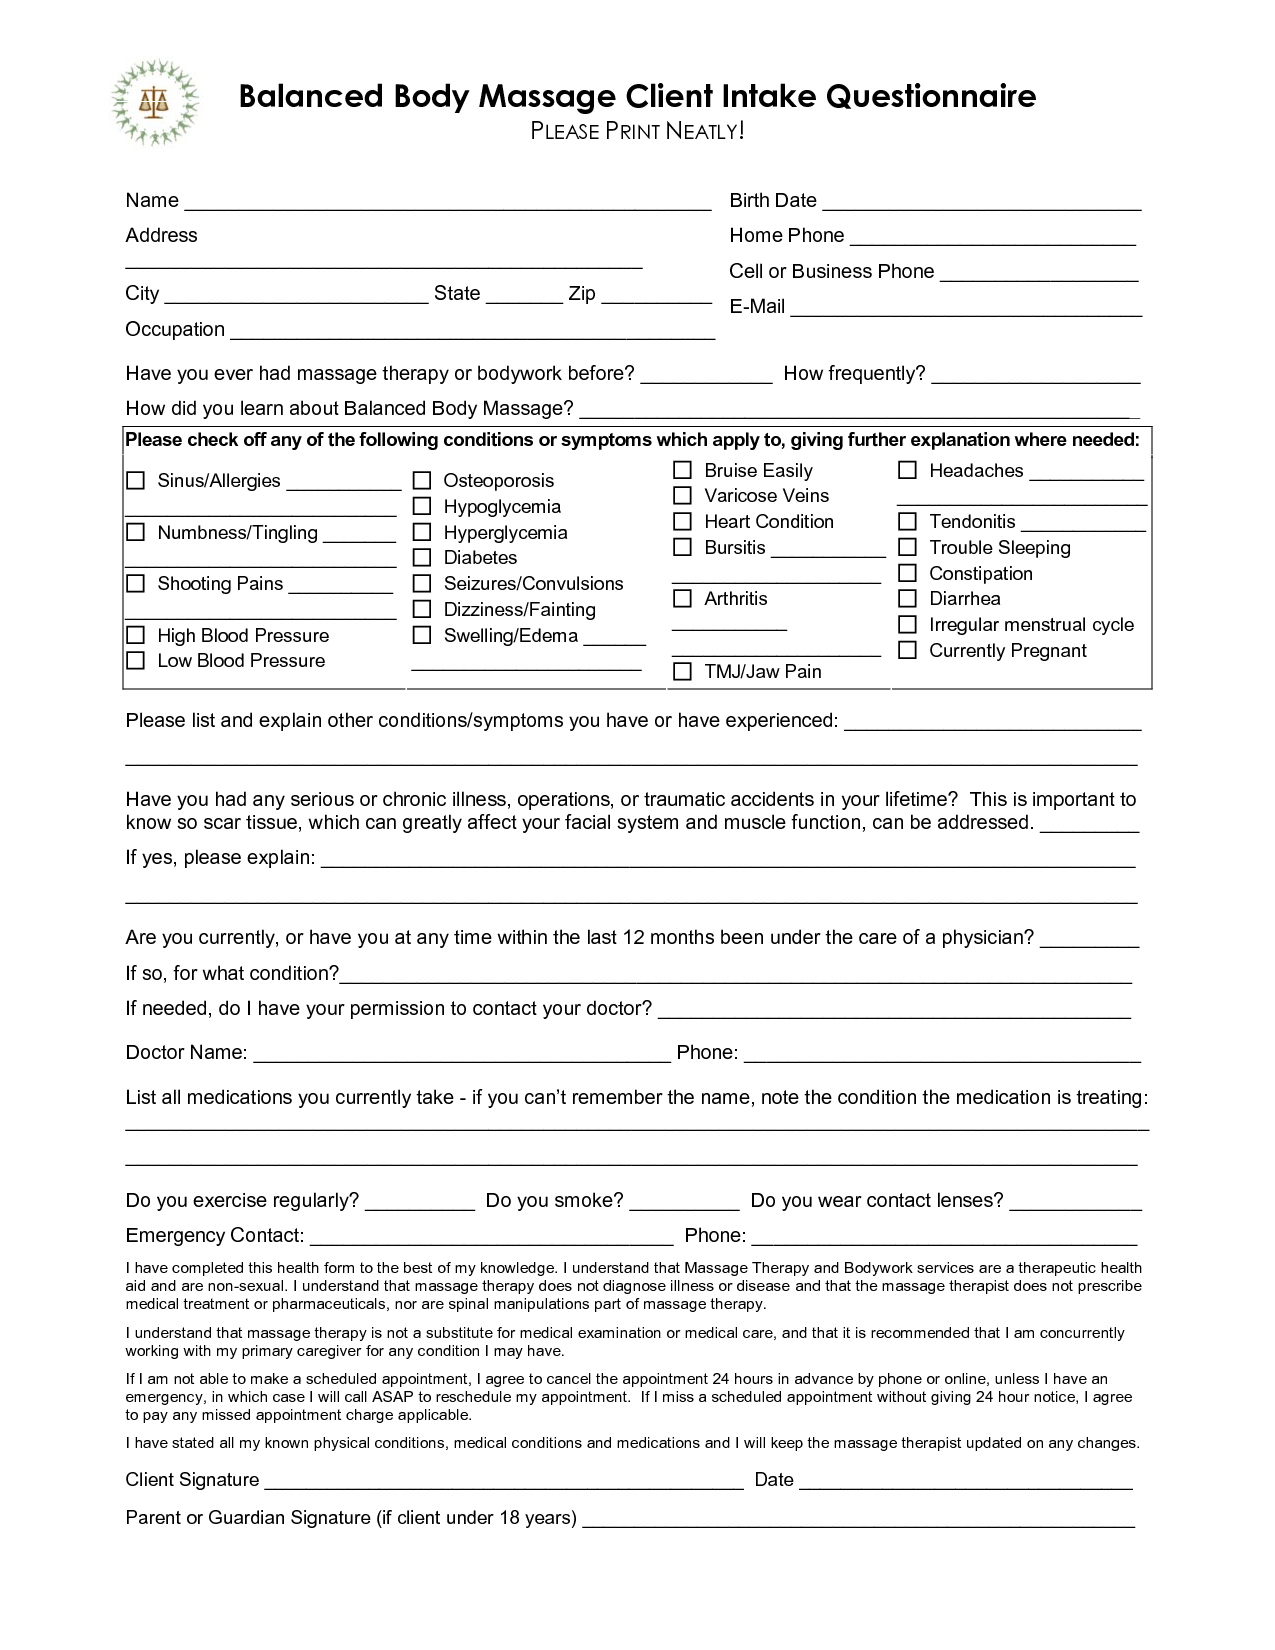 Free Massage Intake Forms